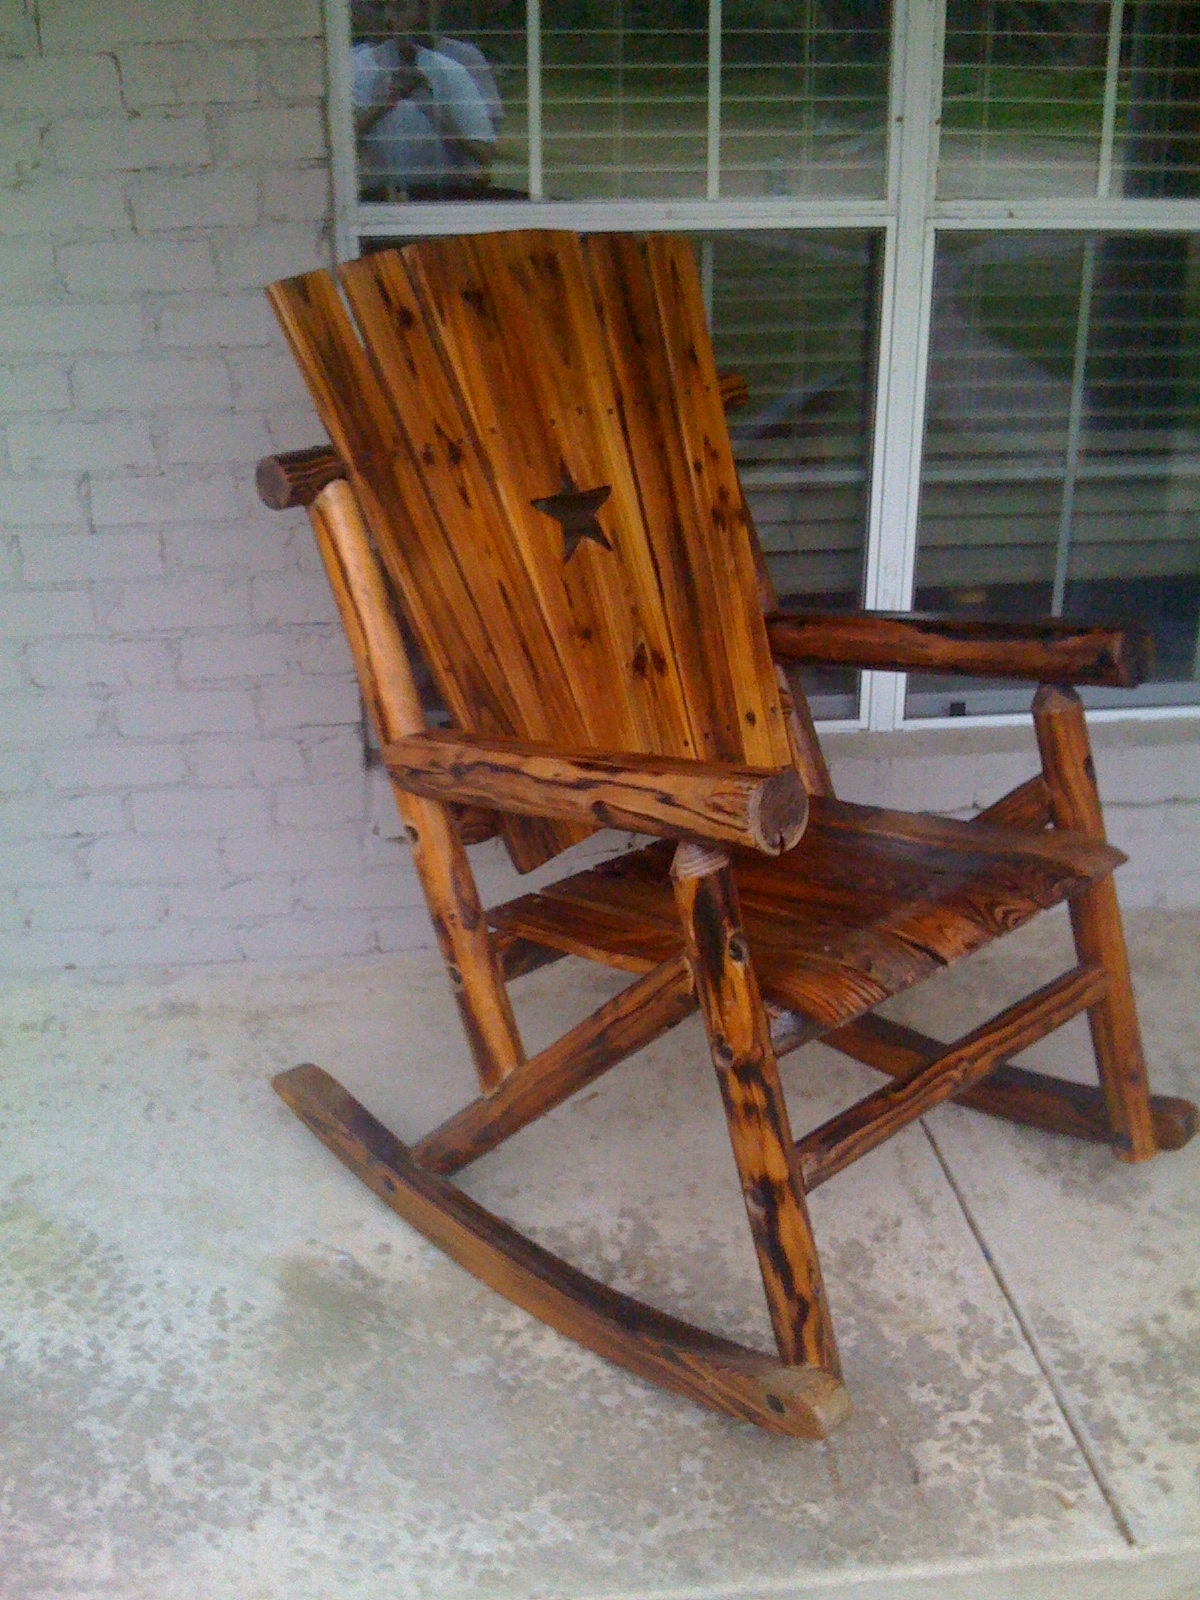 Popular Outdoor Wooden Rocking Chairs Rustic : Pleasure Outdoor Wooden In Unique Outdoor Rocking Chairs (View 6 of 15)